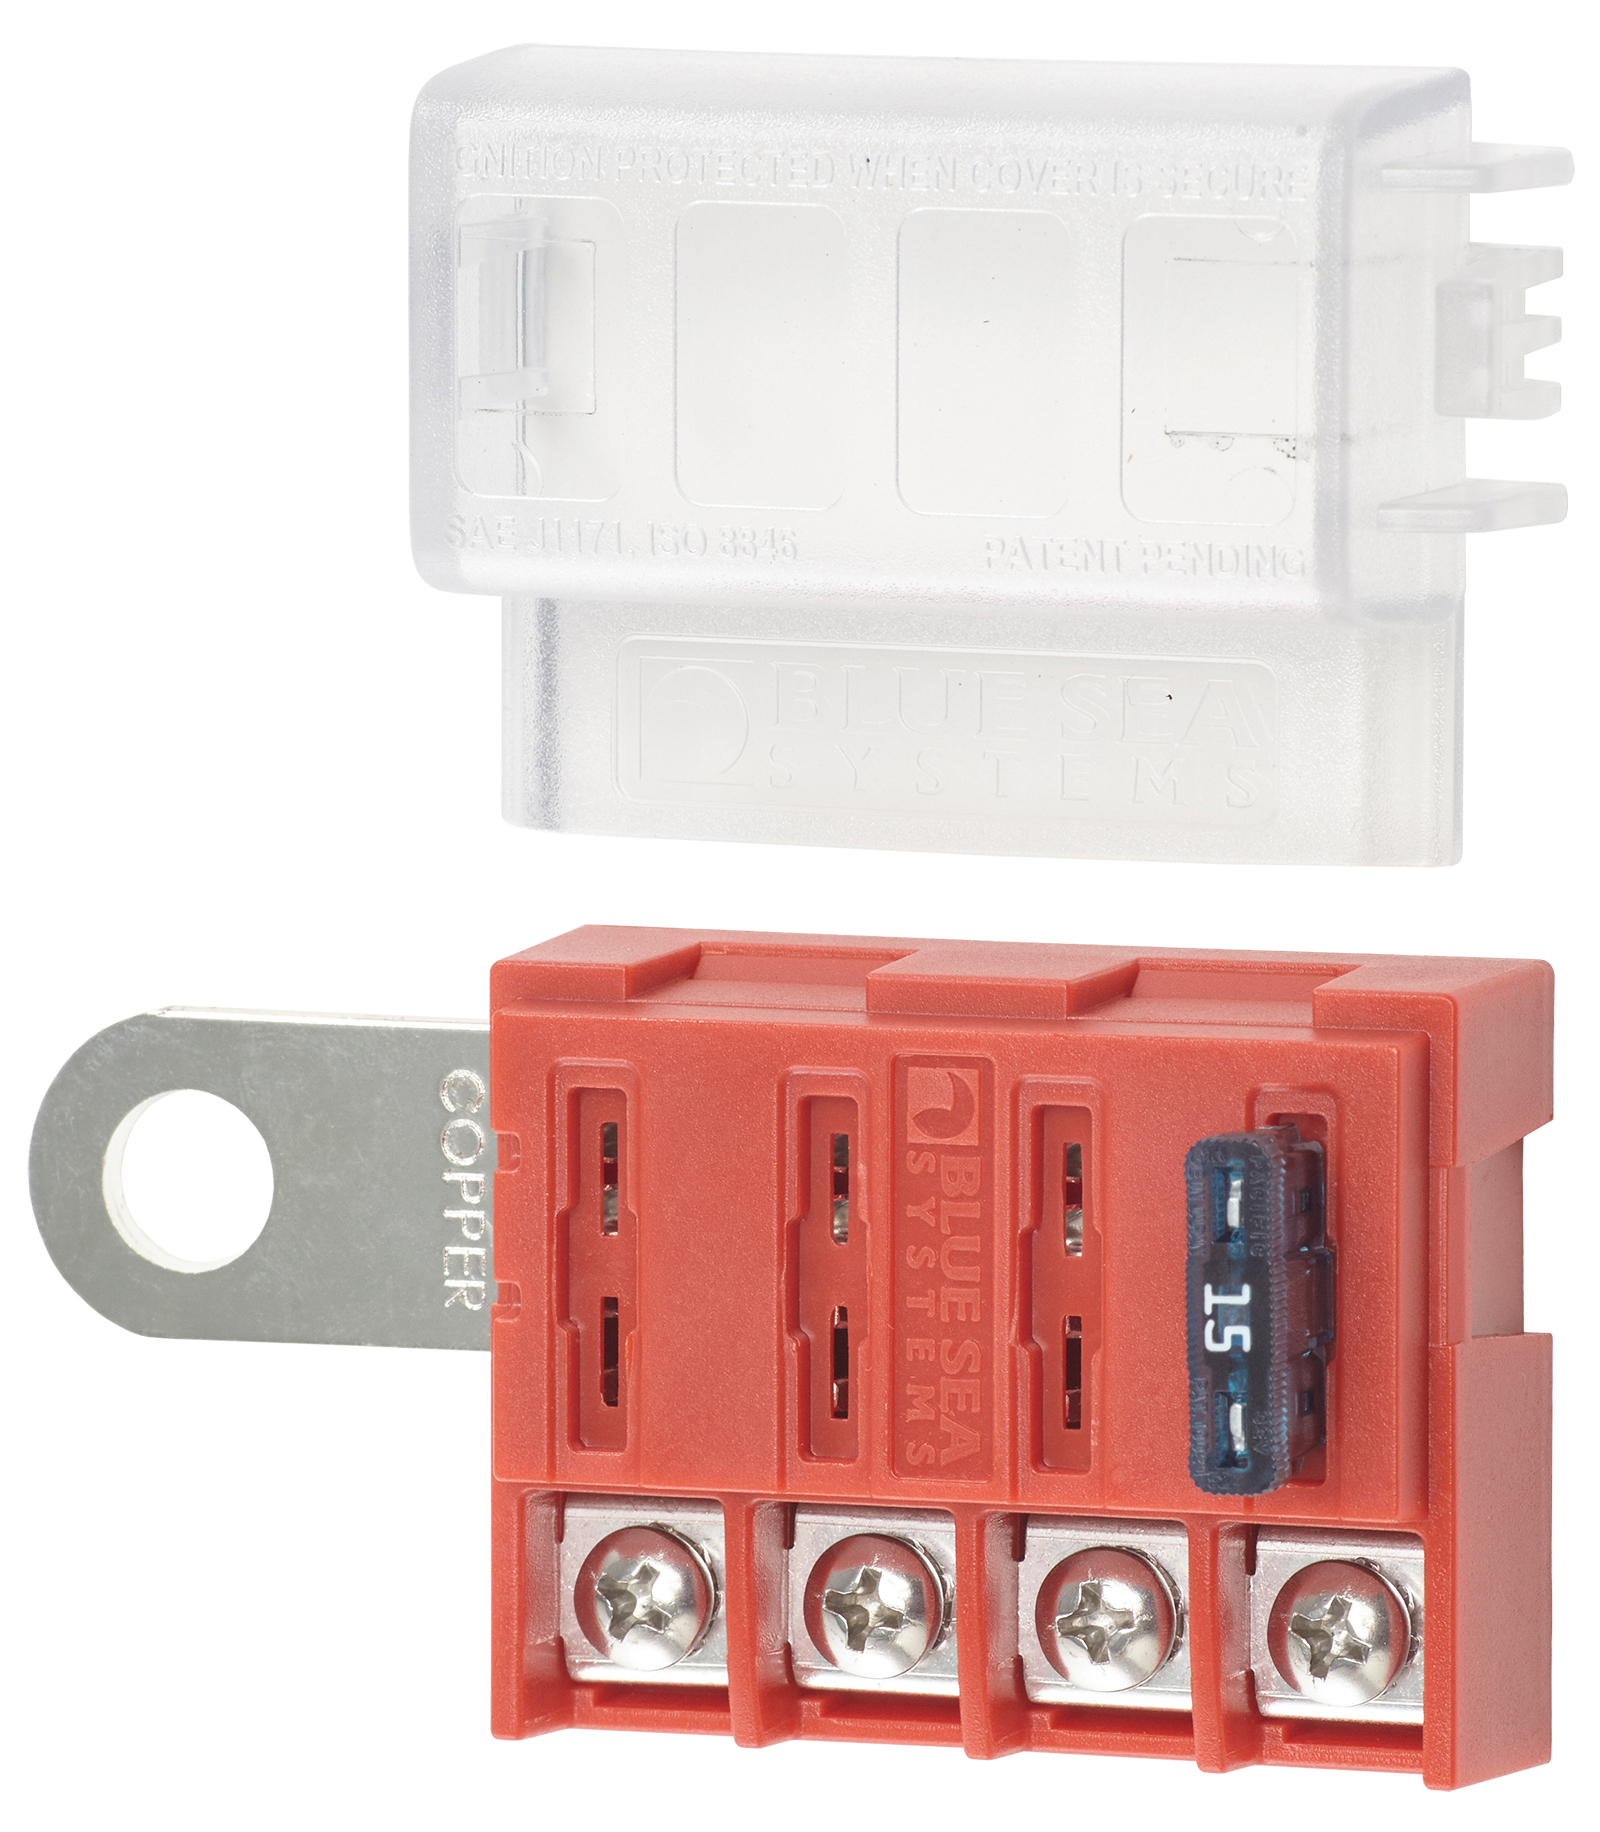 st blade battery terminal mount fuse block blue sea systemsBattery To Fuse Box Connectors #21